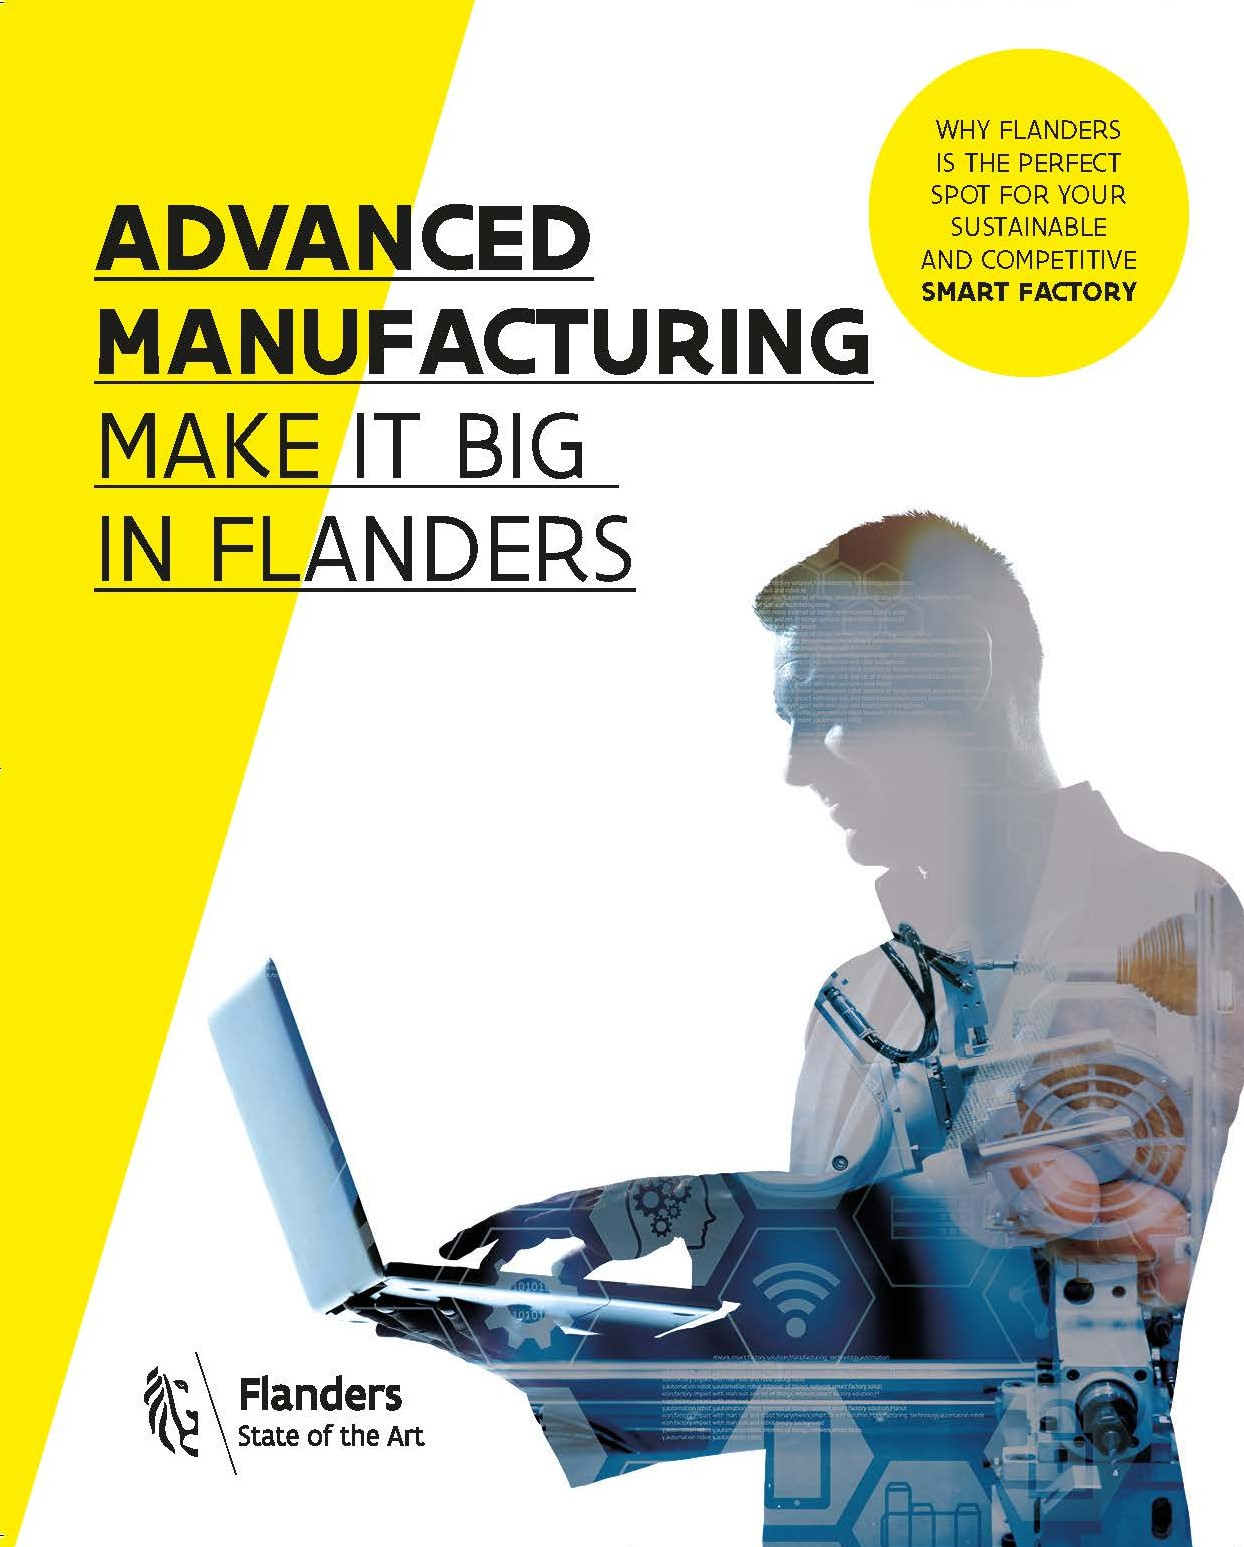 Handbook to setting up manufacturing operations in Flanders